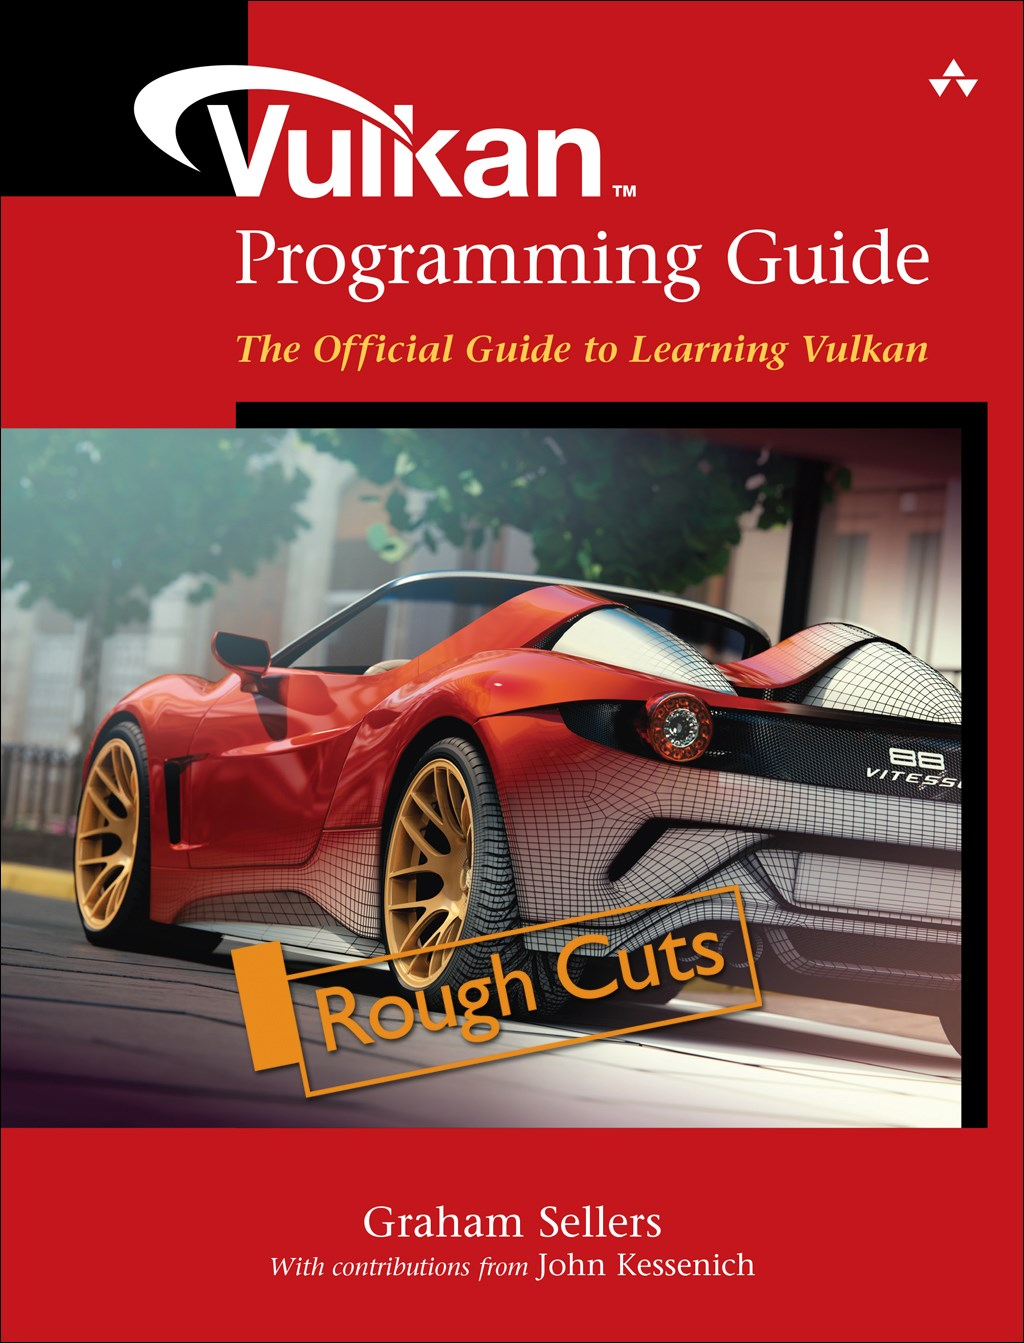 Vulkan Programming Guide: The Official Guide to Learning Vulkan, Rough Cuts